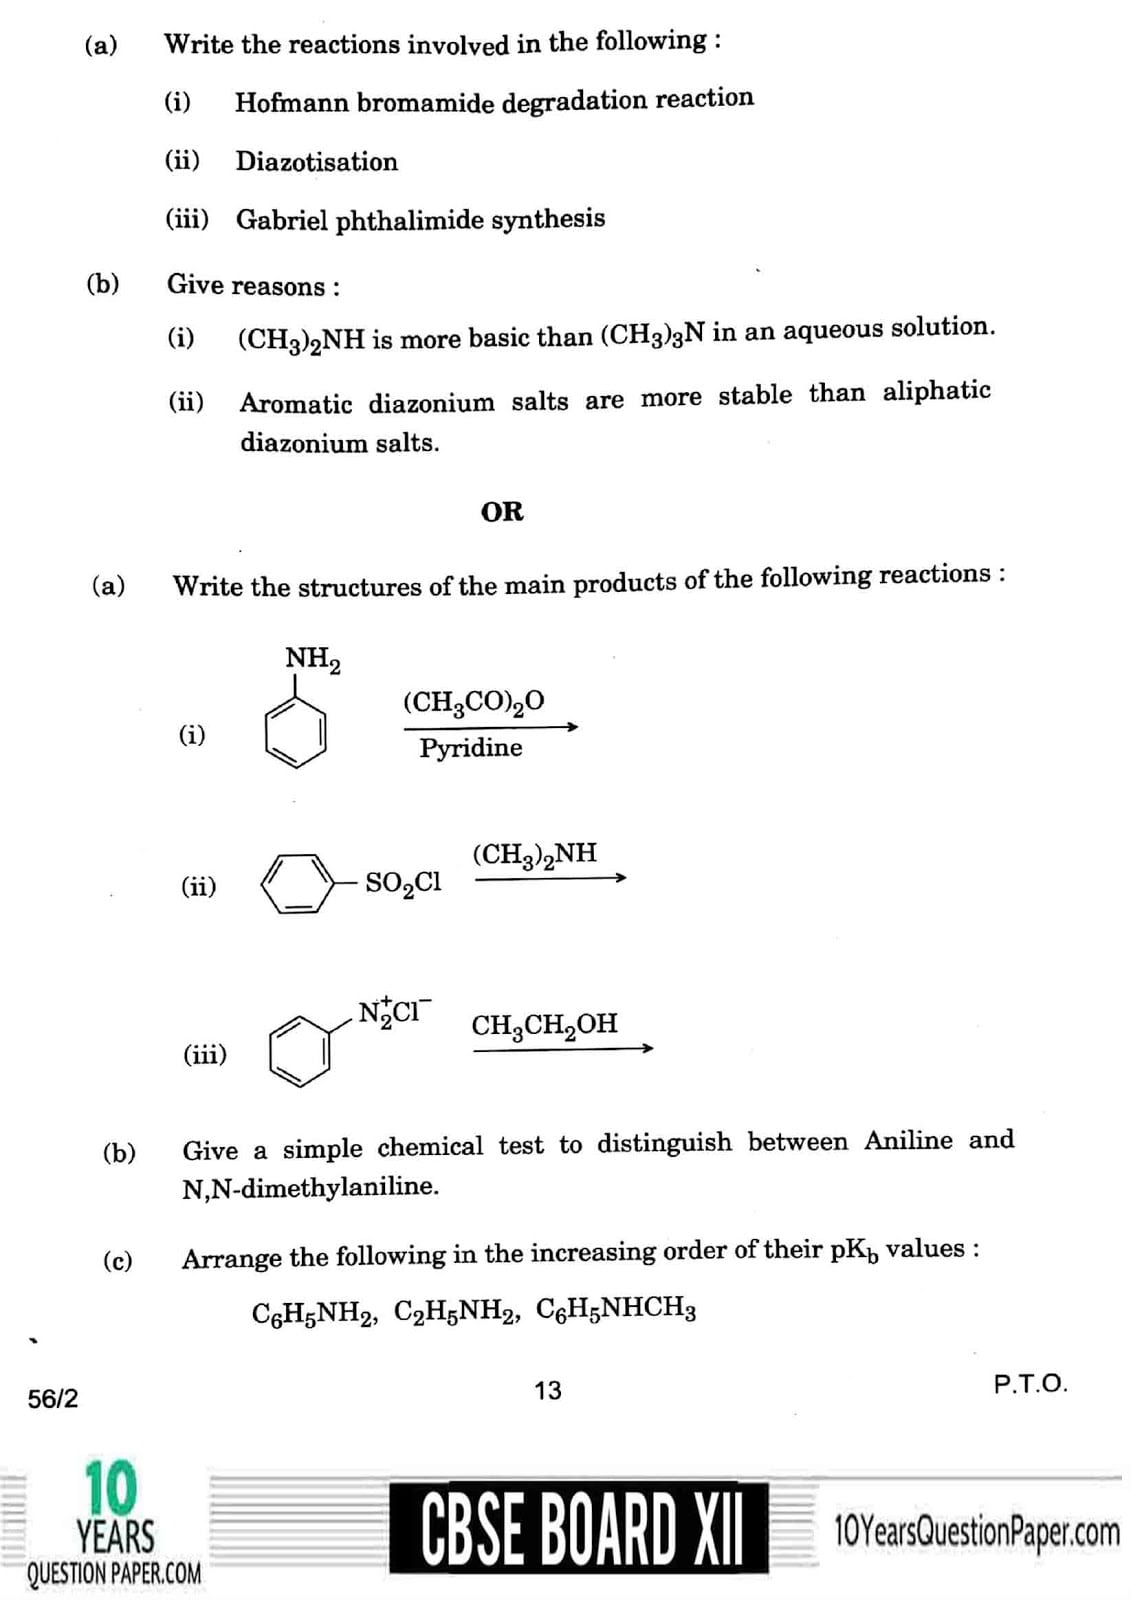 CBSE Class 12 Chemistry 2018 Question Paper